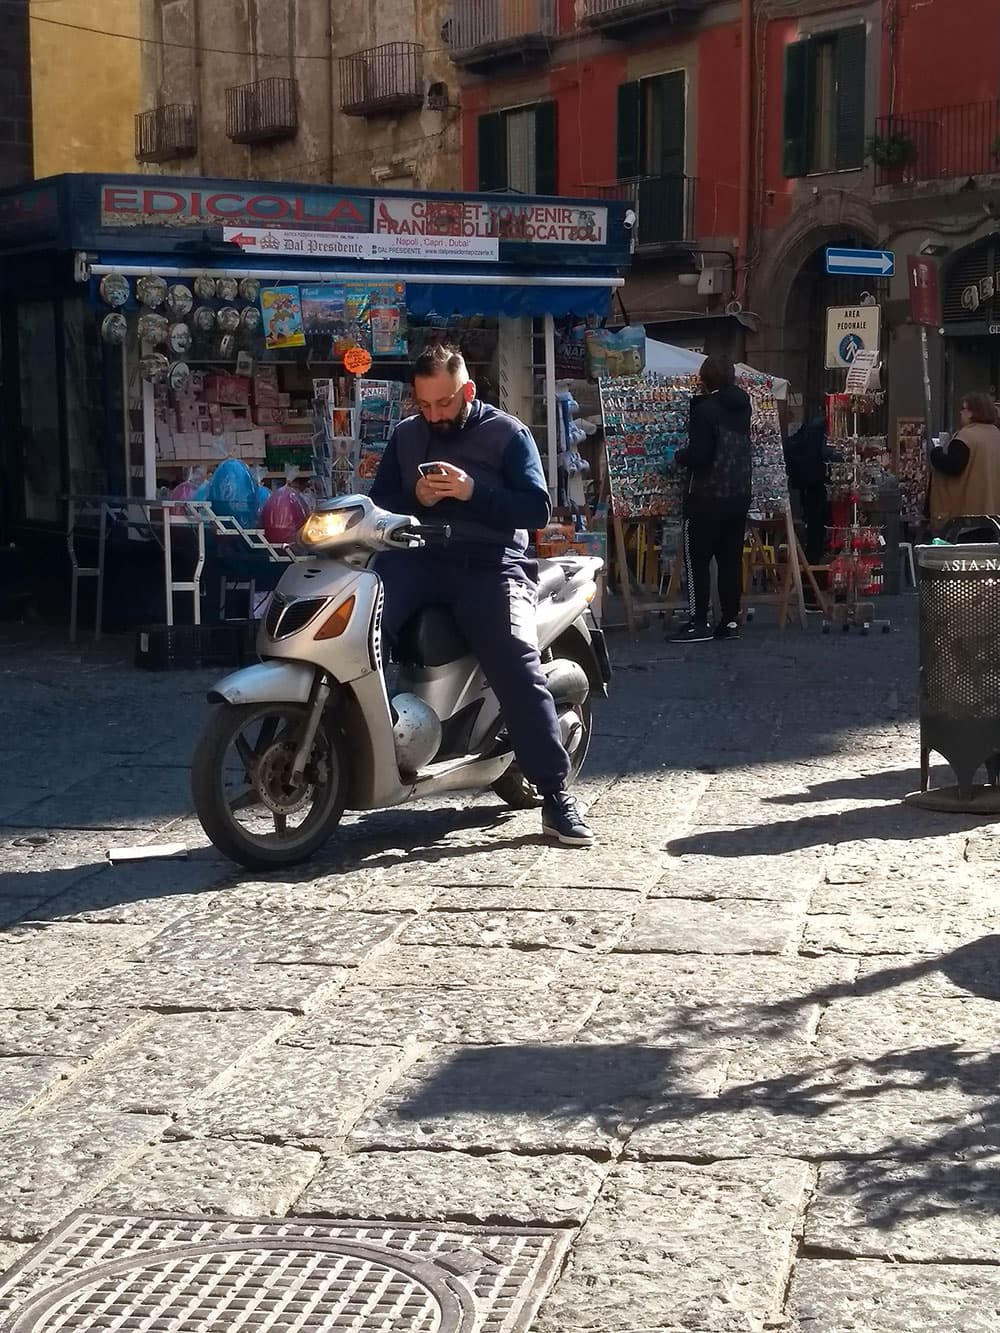 A local on a scooter in Naples